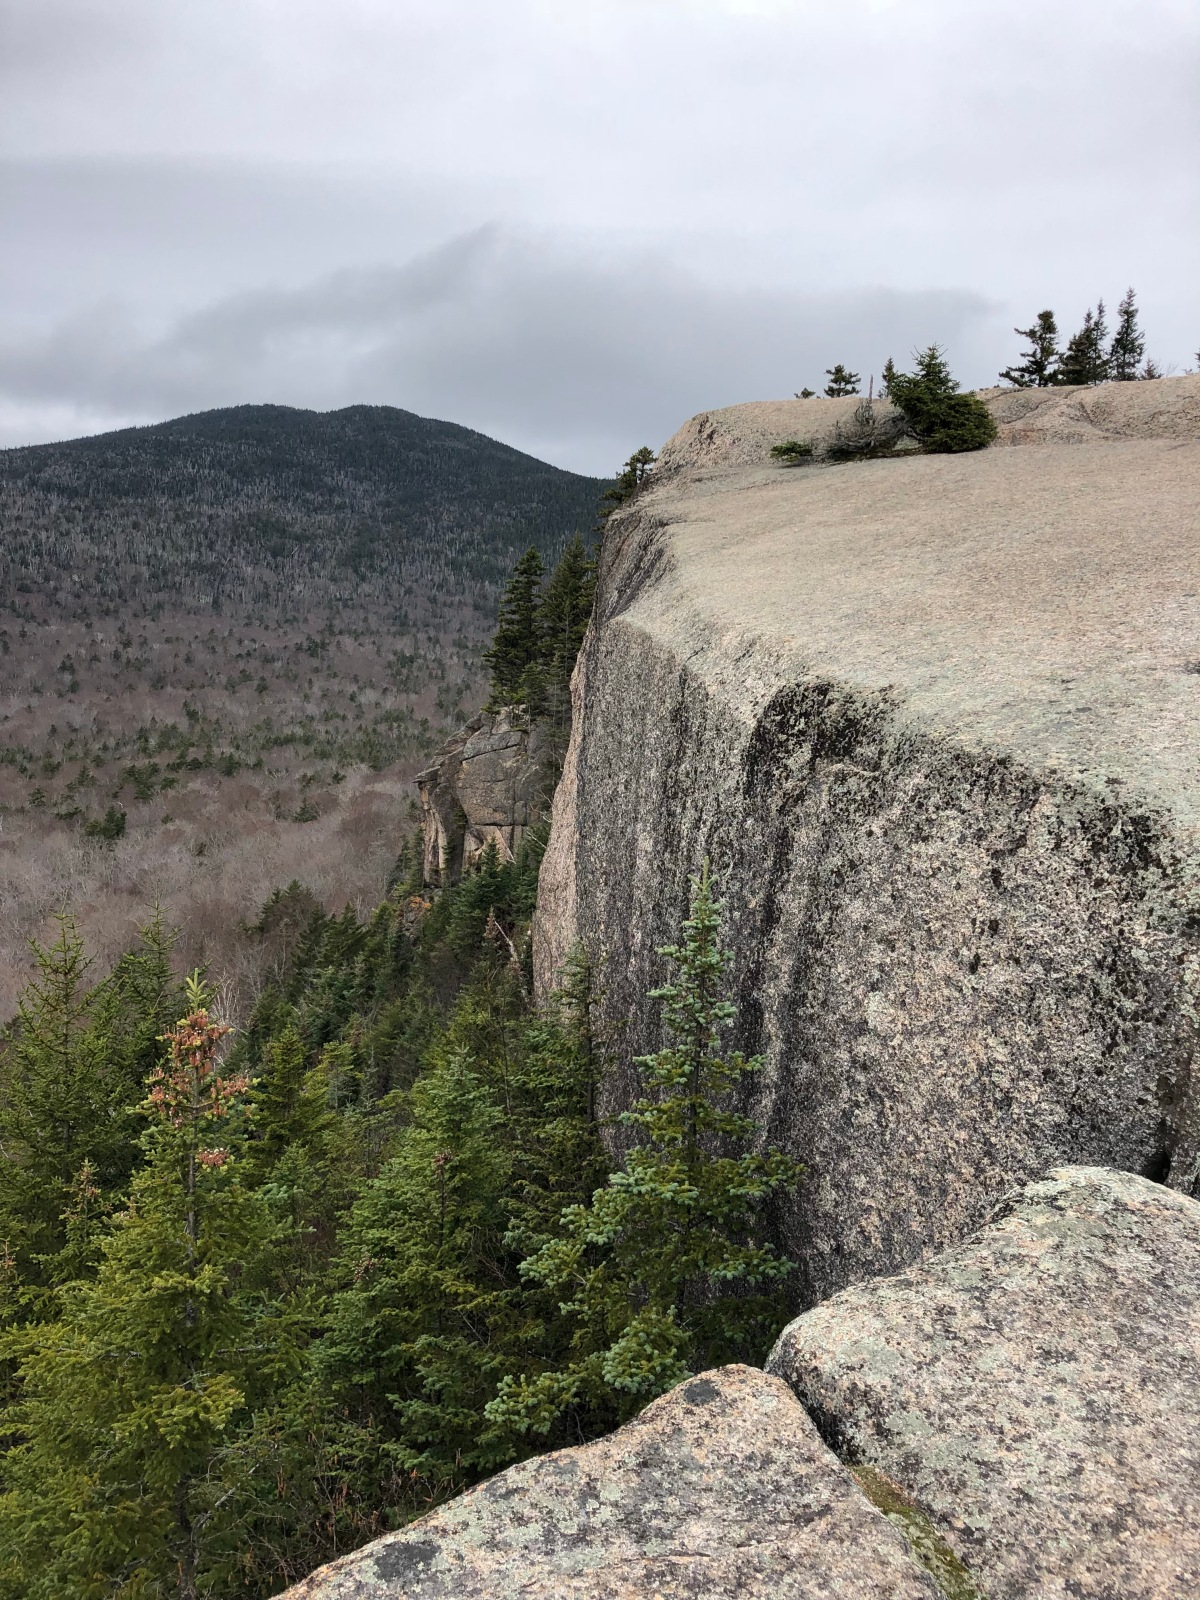 Sunday Hikes:  The Mt Pemigewasset Trail